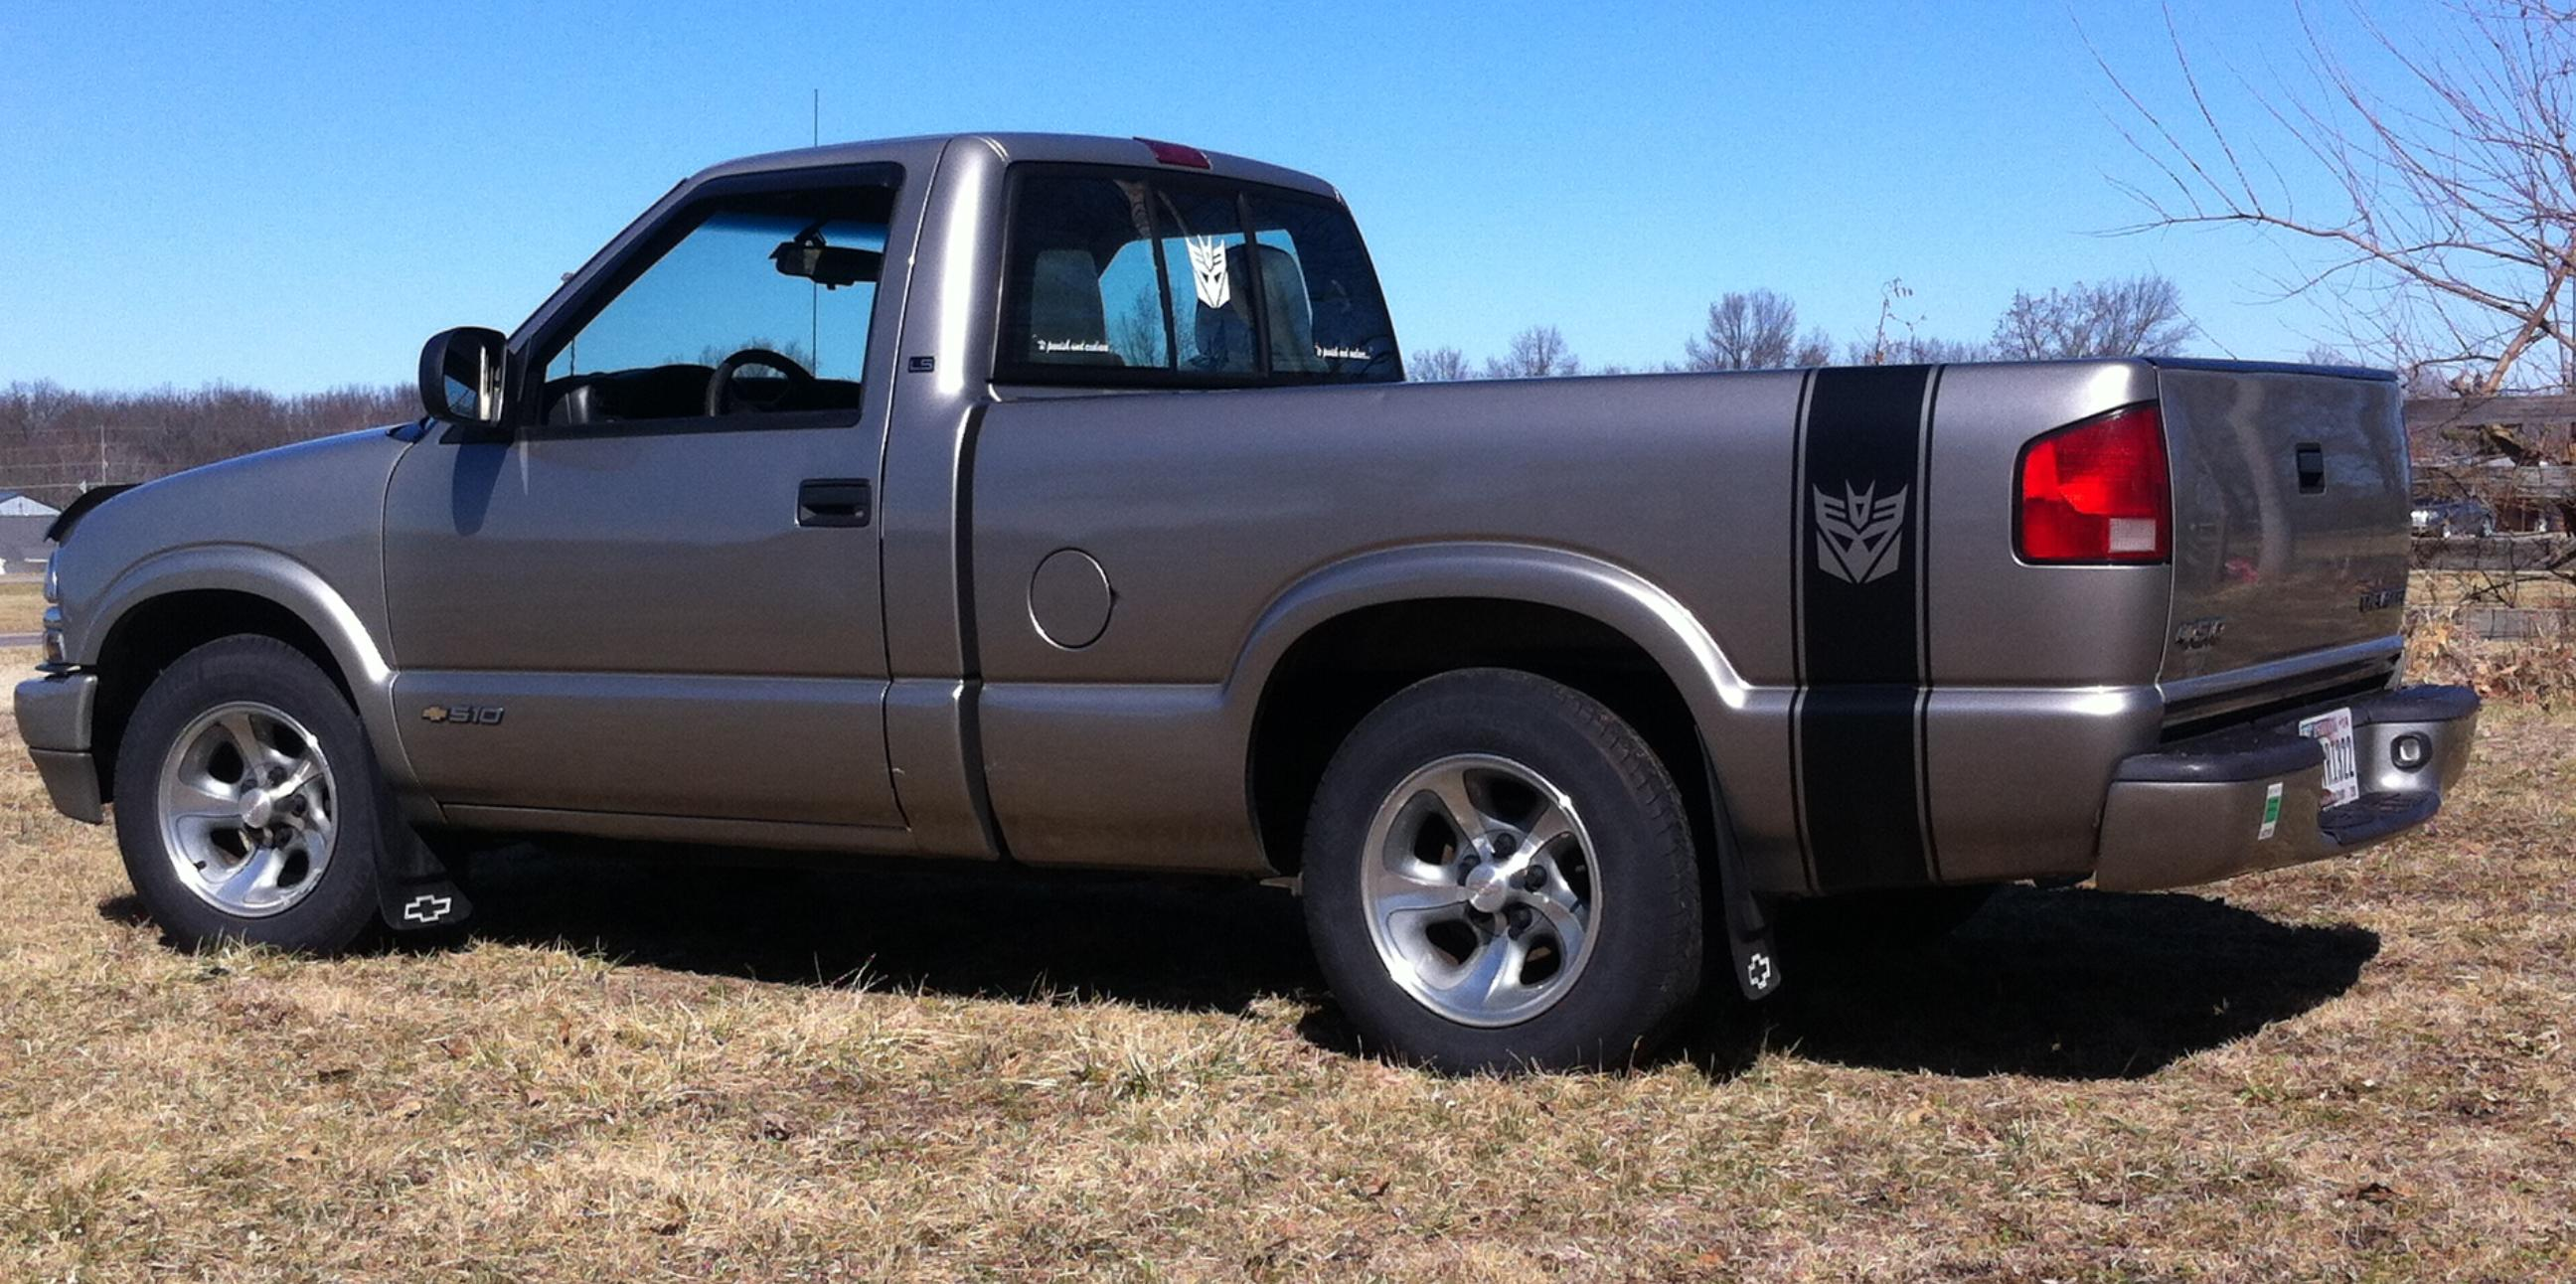 Ford Shelby Pickup >> csknight 2001 Chevrolet S10-Regular-CabLS-Pickup-2D-6-ft Specs, Photos, Modification Info at ...